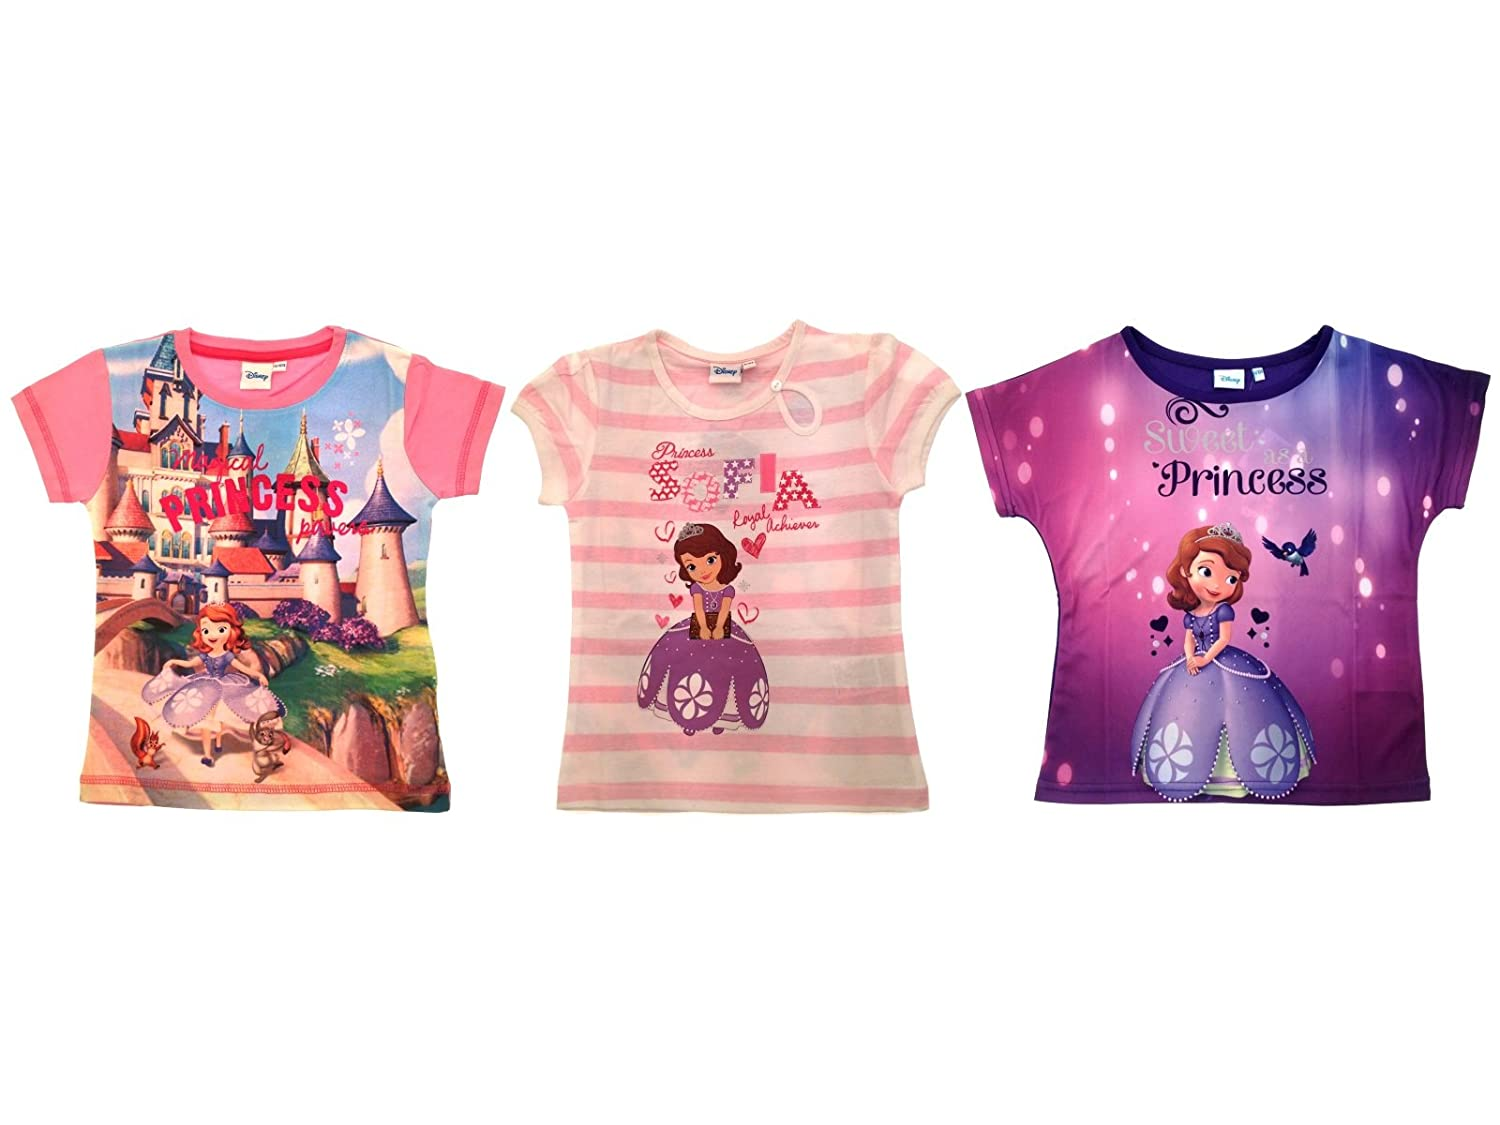 Disney Girls Princess Sofia The First Summer Tops T Shirts Size UK 2-8 Years:  Amazon.co.uk: Clothing